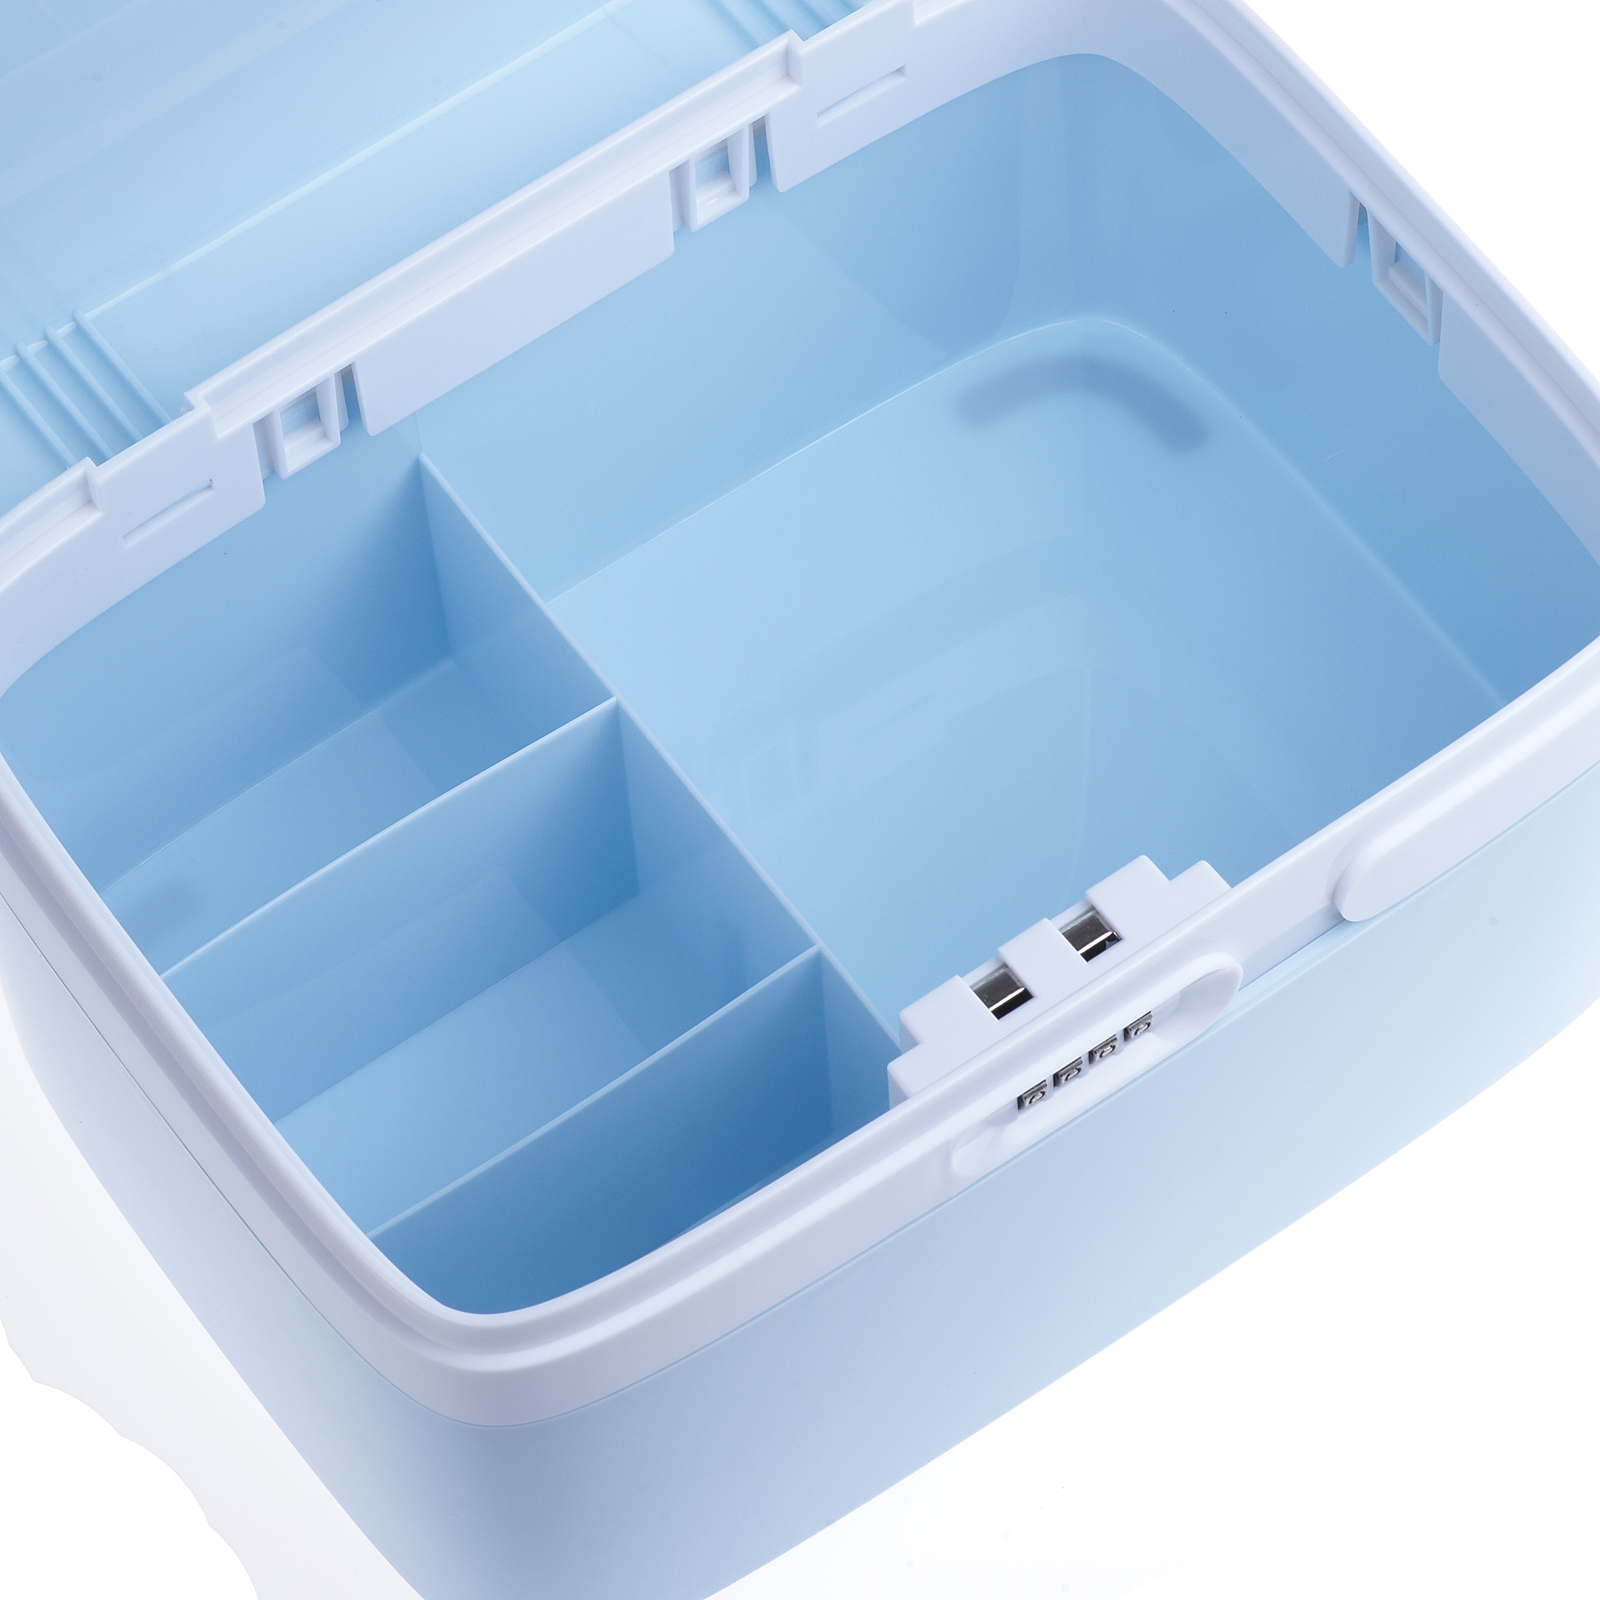 Details about First Aid Box Medical Emergency Case Safe Lockable Medicine  Storage Box Portable